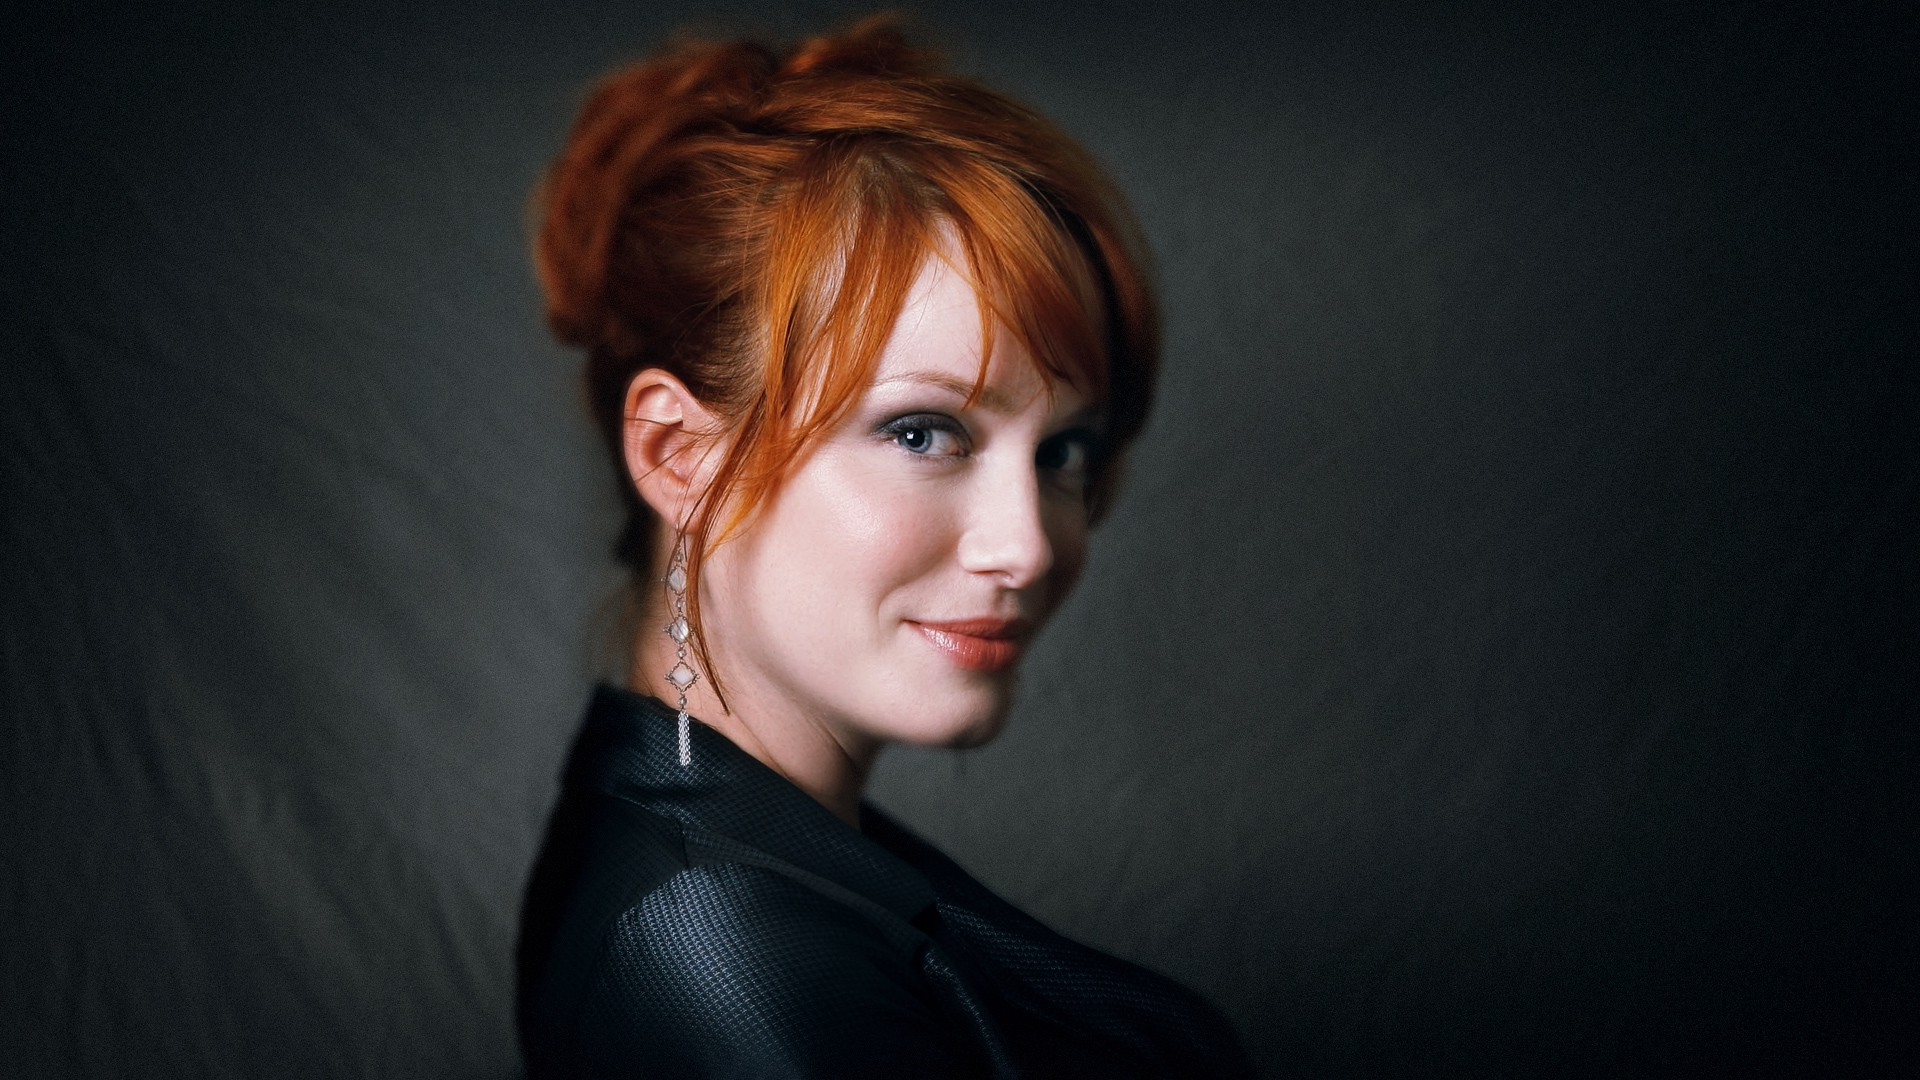 Christina Hendricks Widescreen